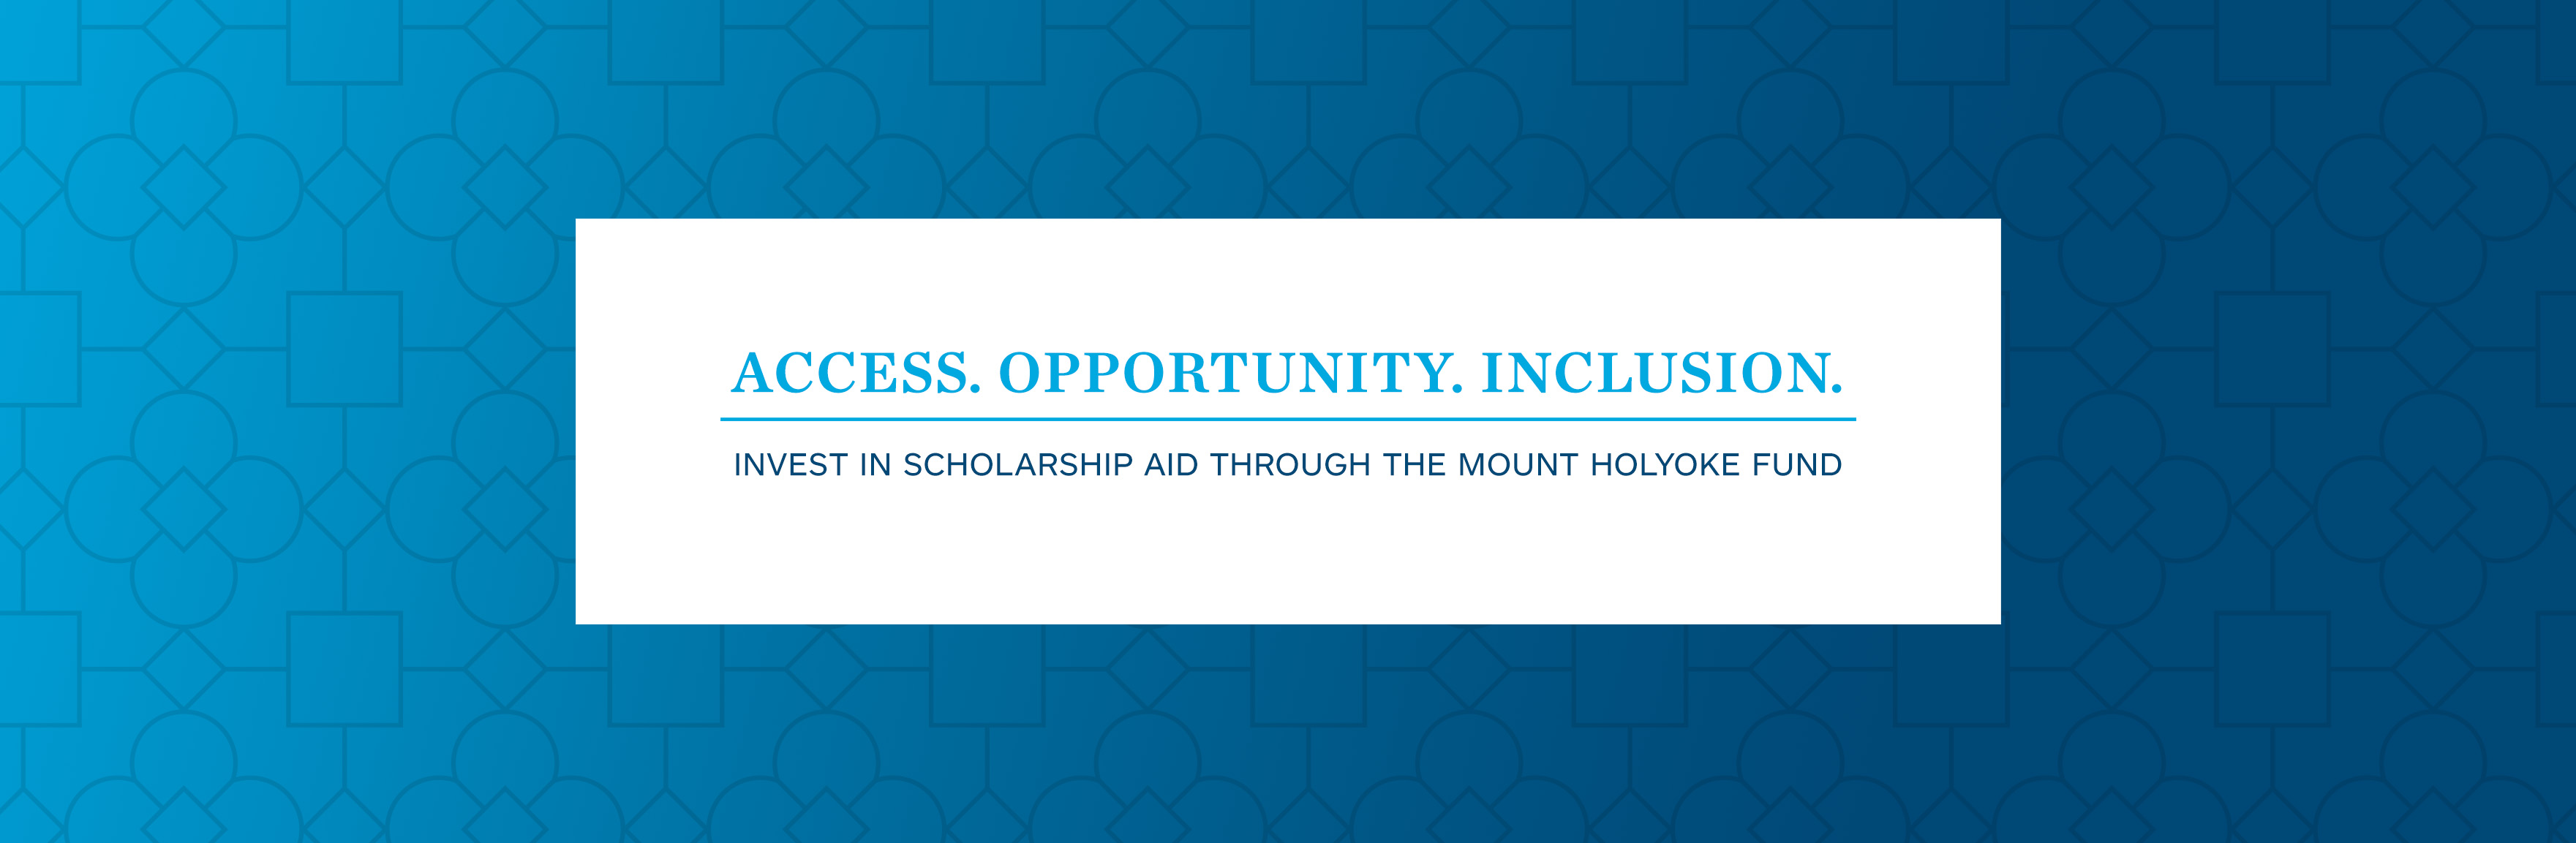 Access. Opportunity. Inclusion. Invest in scholarship aid through The Mount Holyoke Fund.